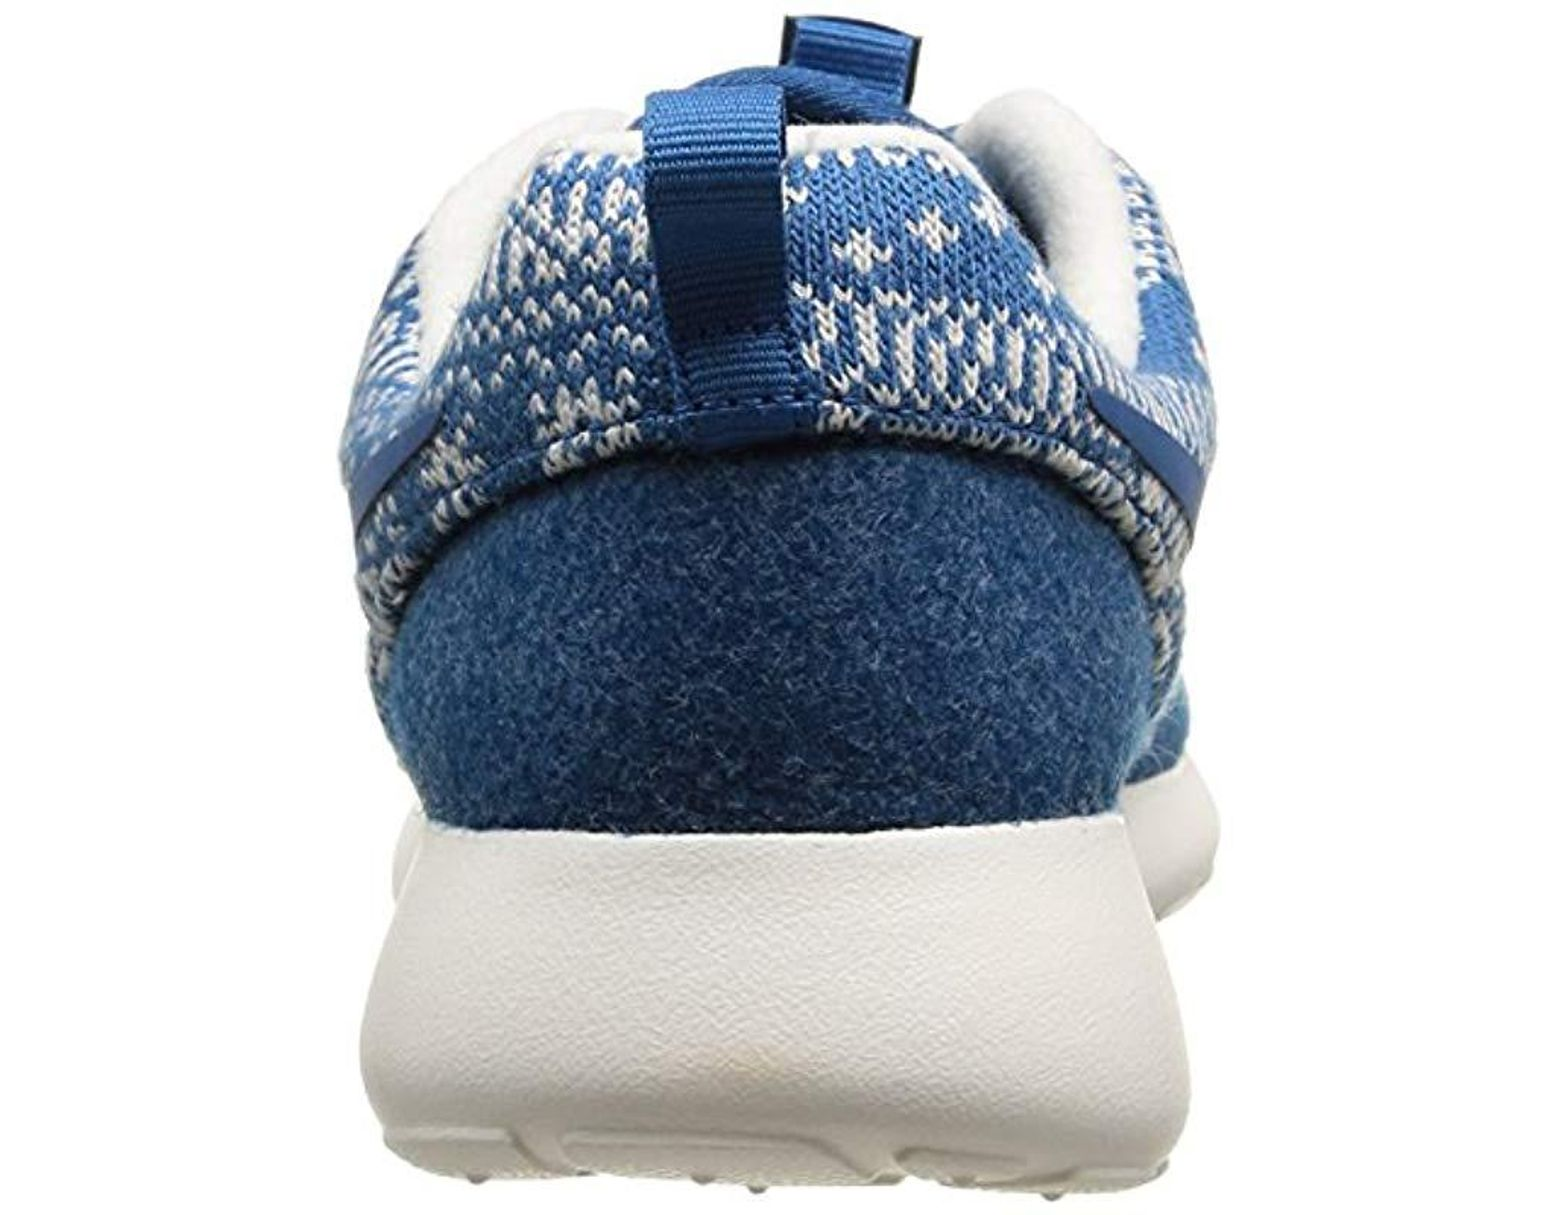 best service 1031a e1066 Nike Wmns Roshe One Winter Running Shoes in Blue - Lyst